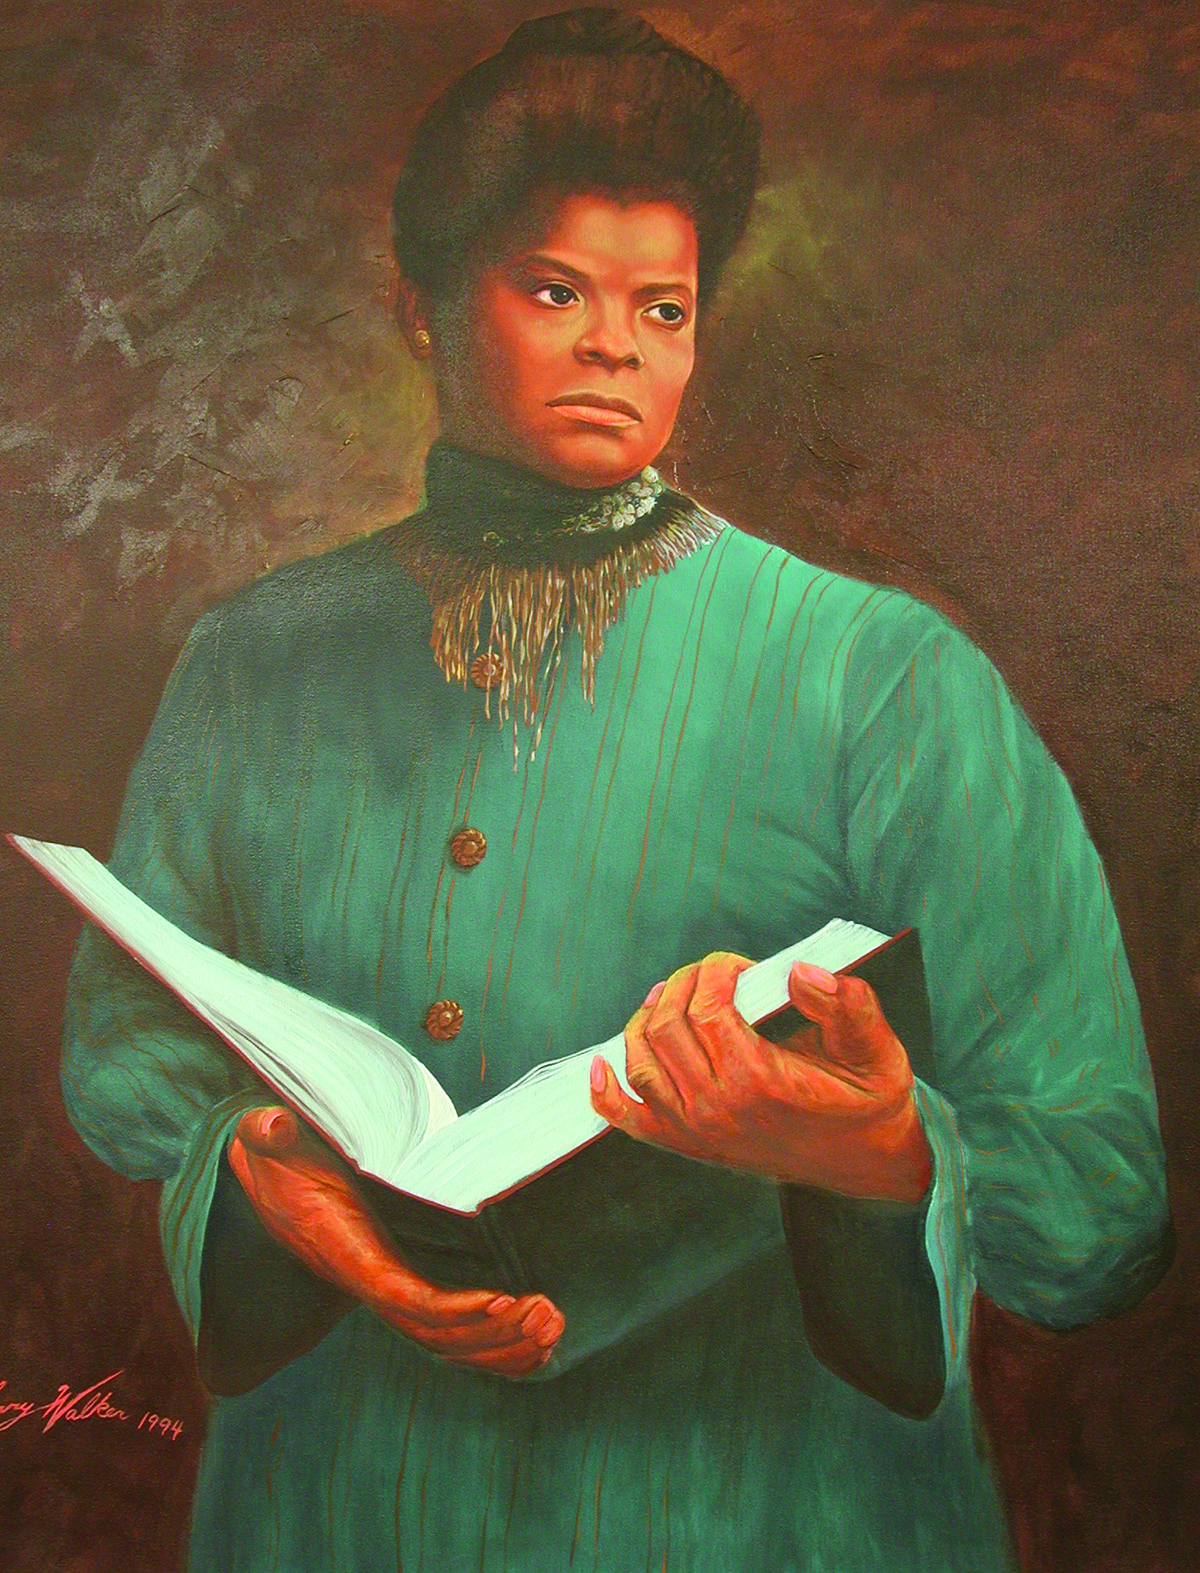 Ida B. Wells (1862-1931), journalist, anti-lynching advocate and suffragist, by Larry Walker, Oil on Canvas, 1994